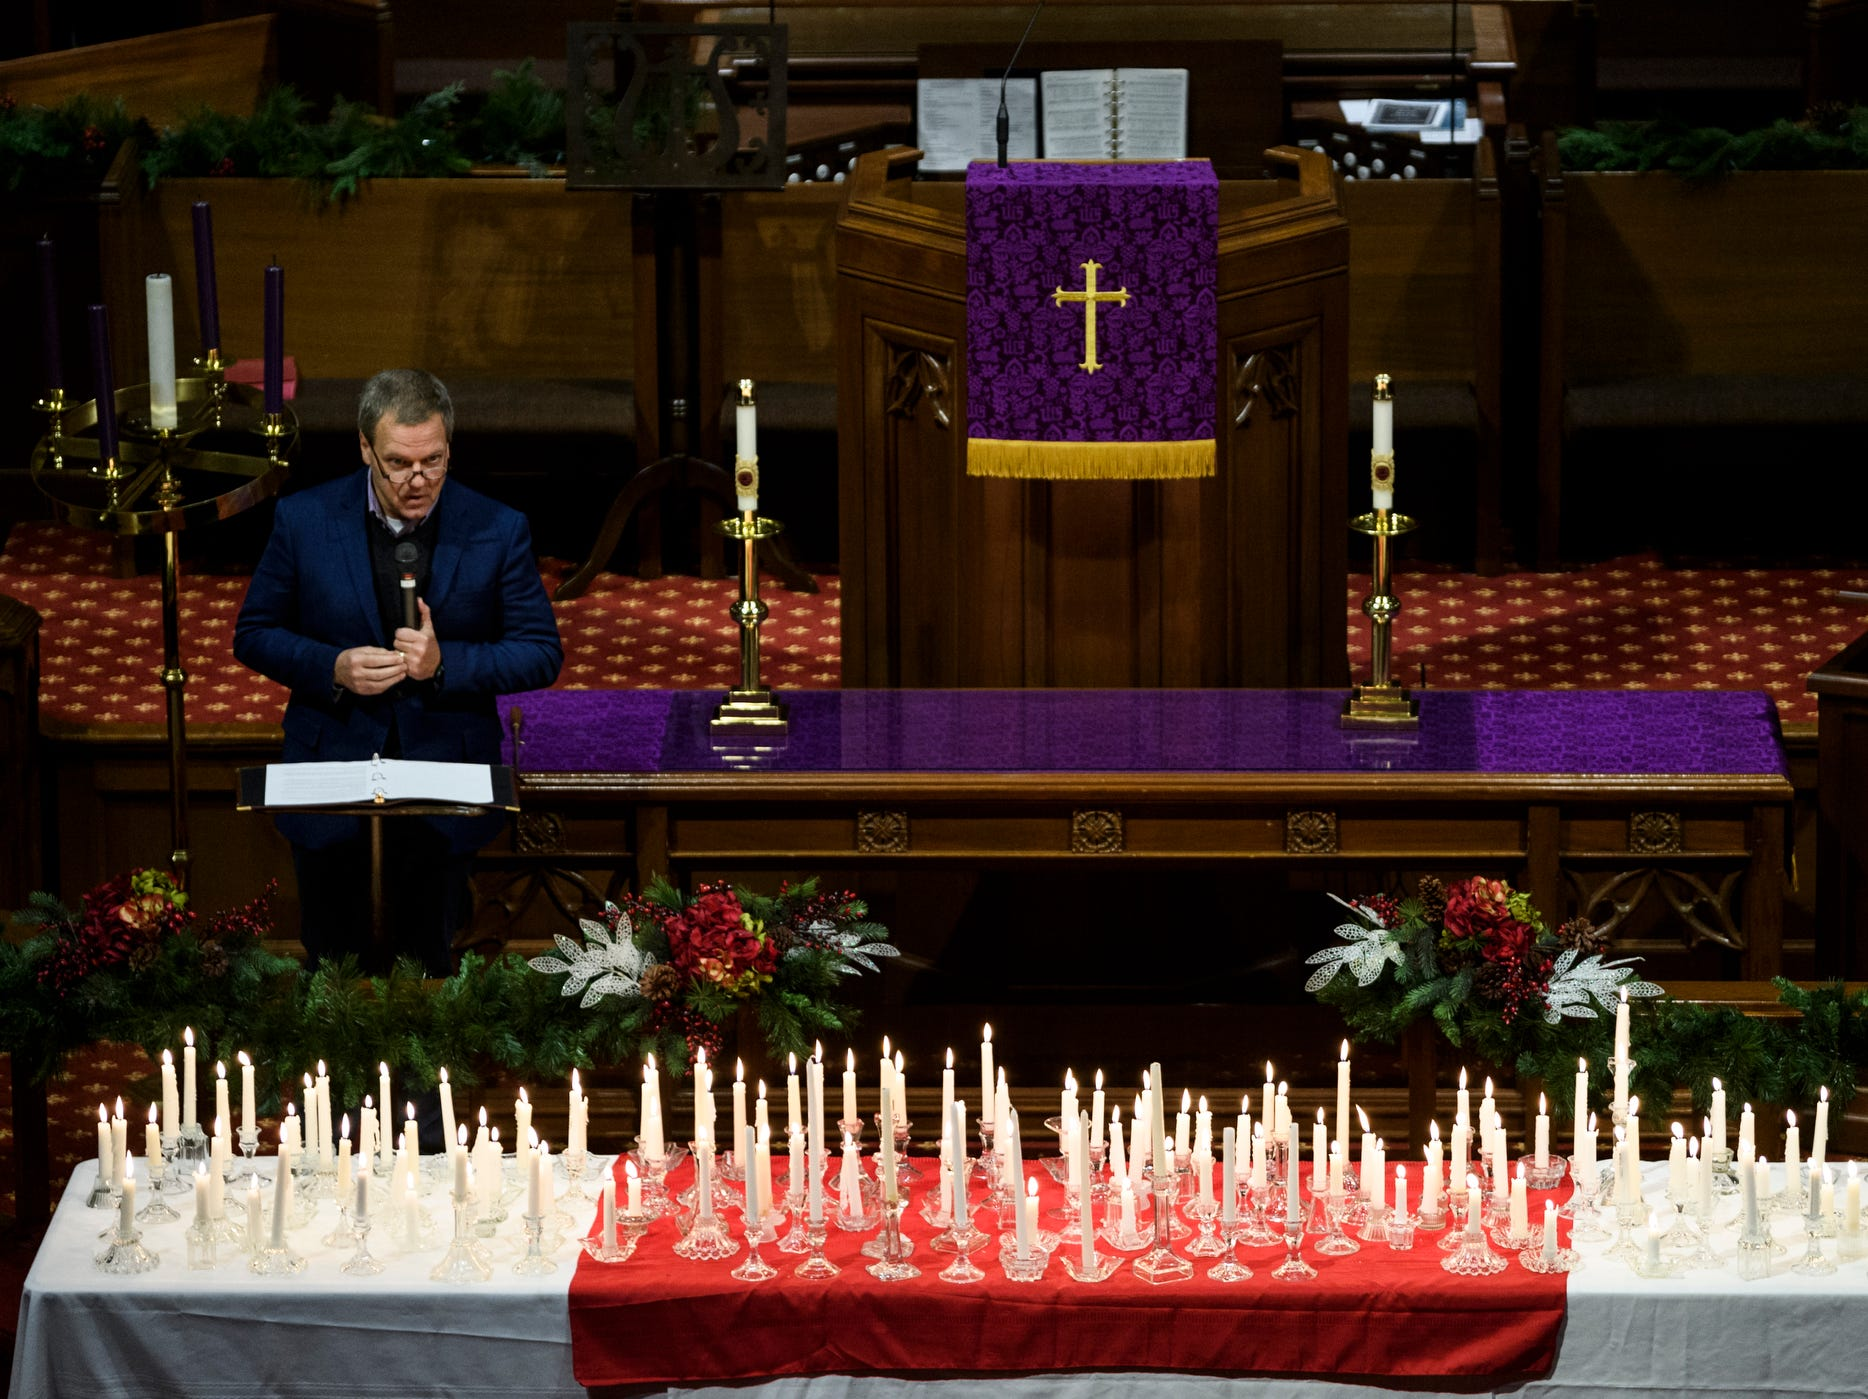 Rev. Scott Cassel of The Turning Pointe United Methodist Church addresses the crowd with a spiritual message during the 18th annual Homeless Memorial service organized by Aurora, a local non-profit serving the homeless population, at Trinity United Methodist Church in Evansville, Ind., Tuesday, Dec. 11, 2018.